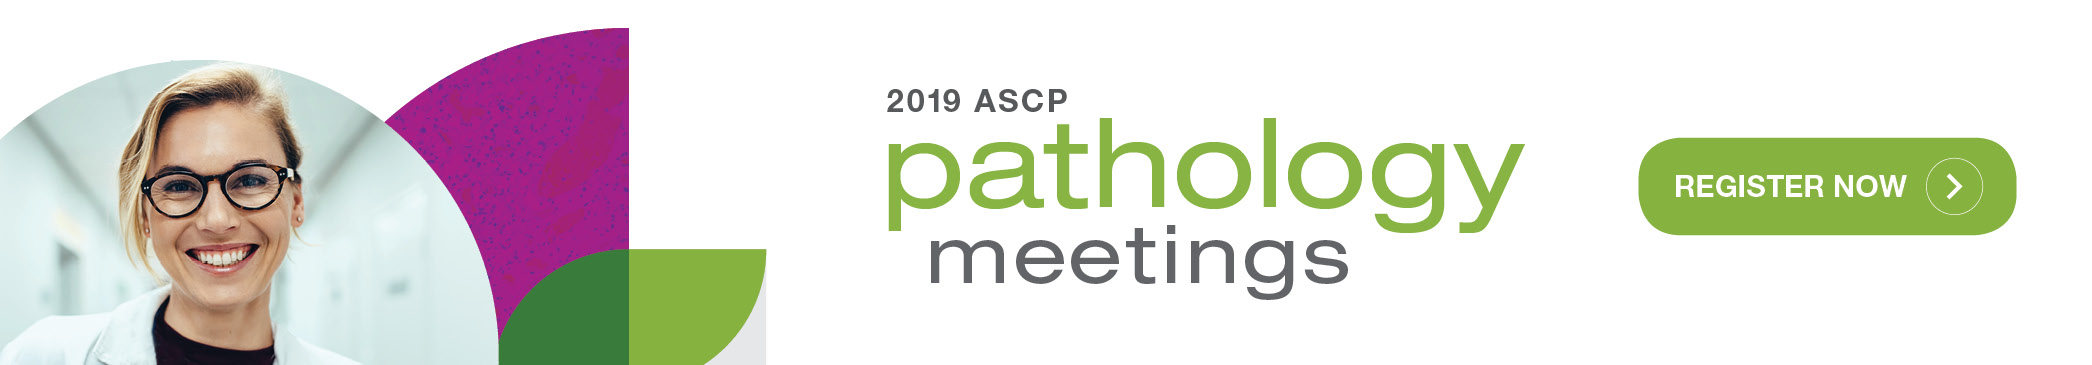 ASCP Pathology Meetings